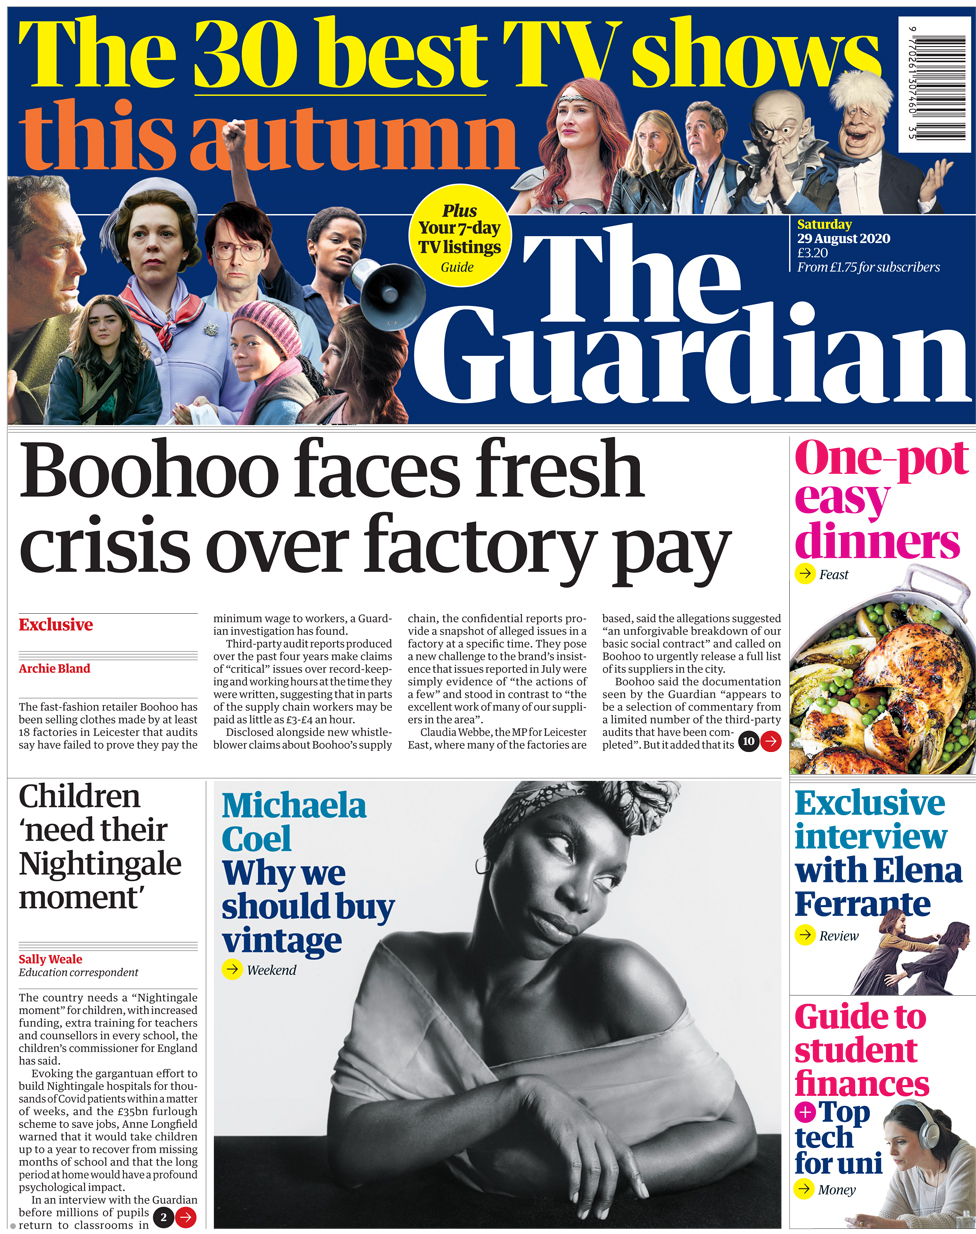 The Guardian front page 29 August 2020